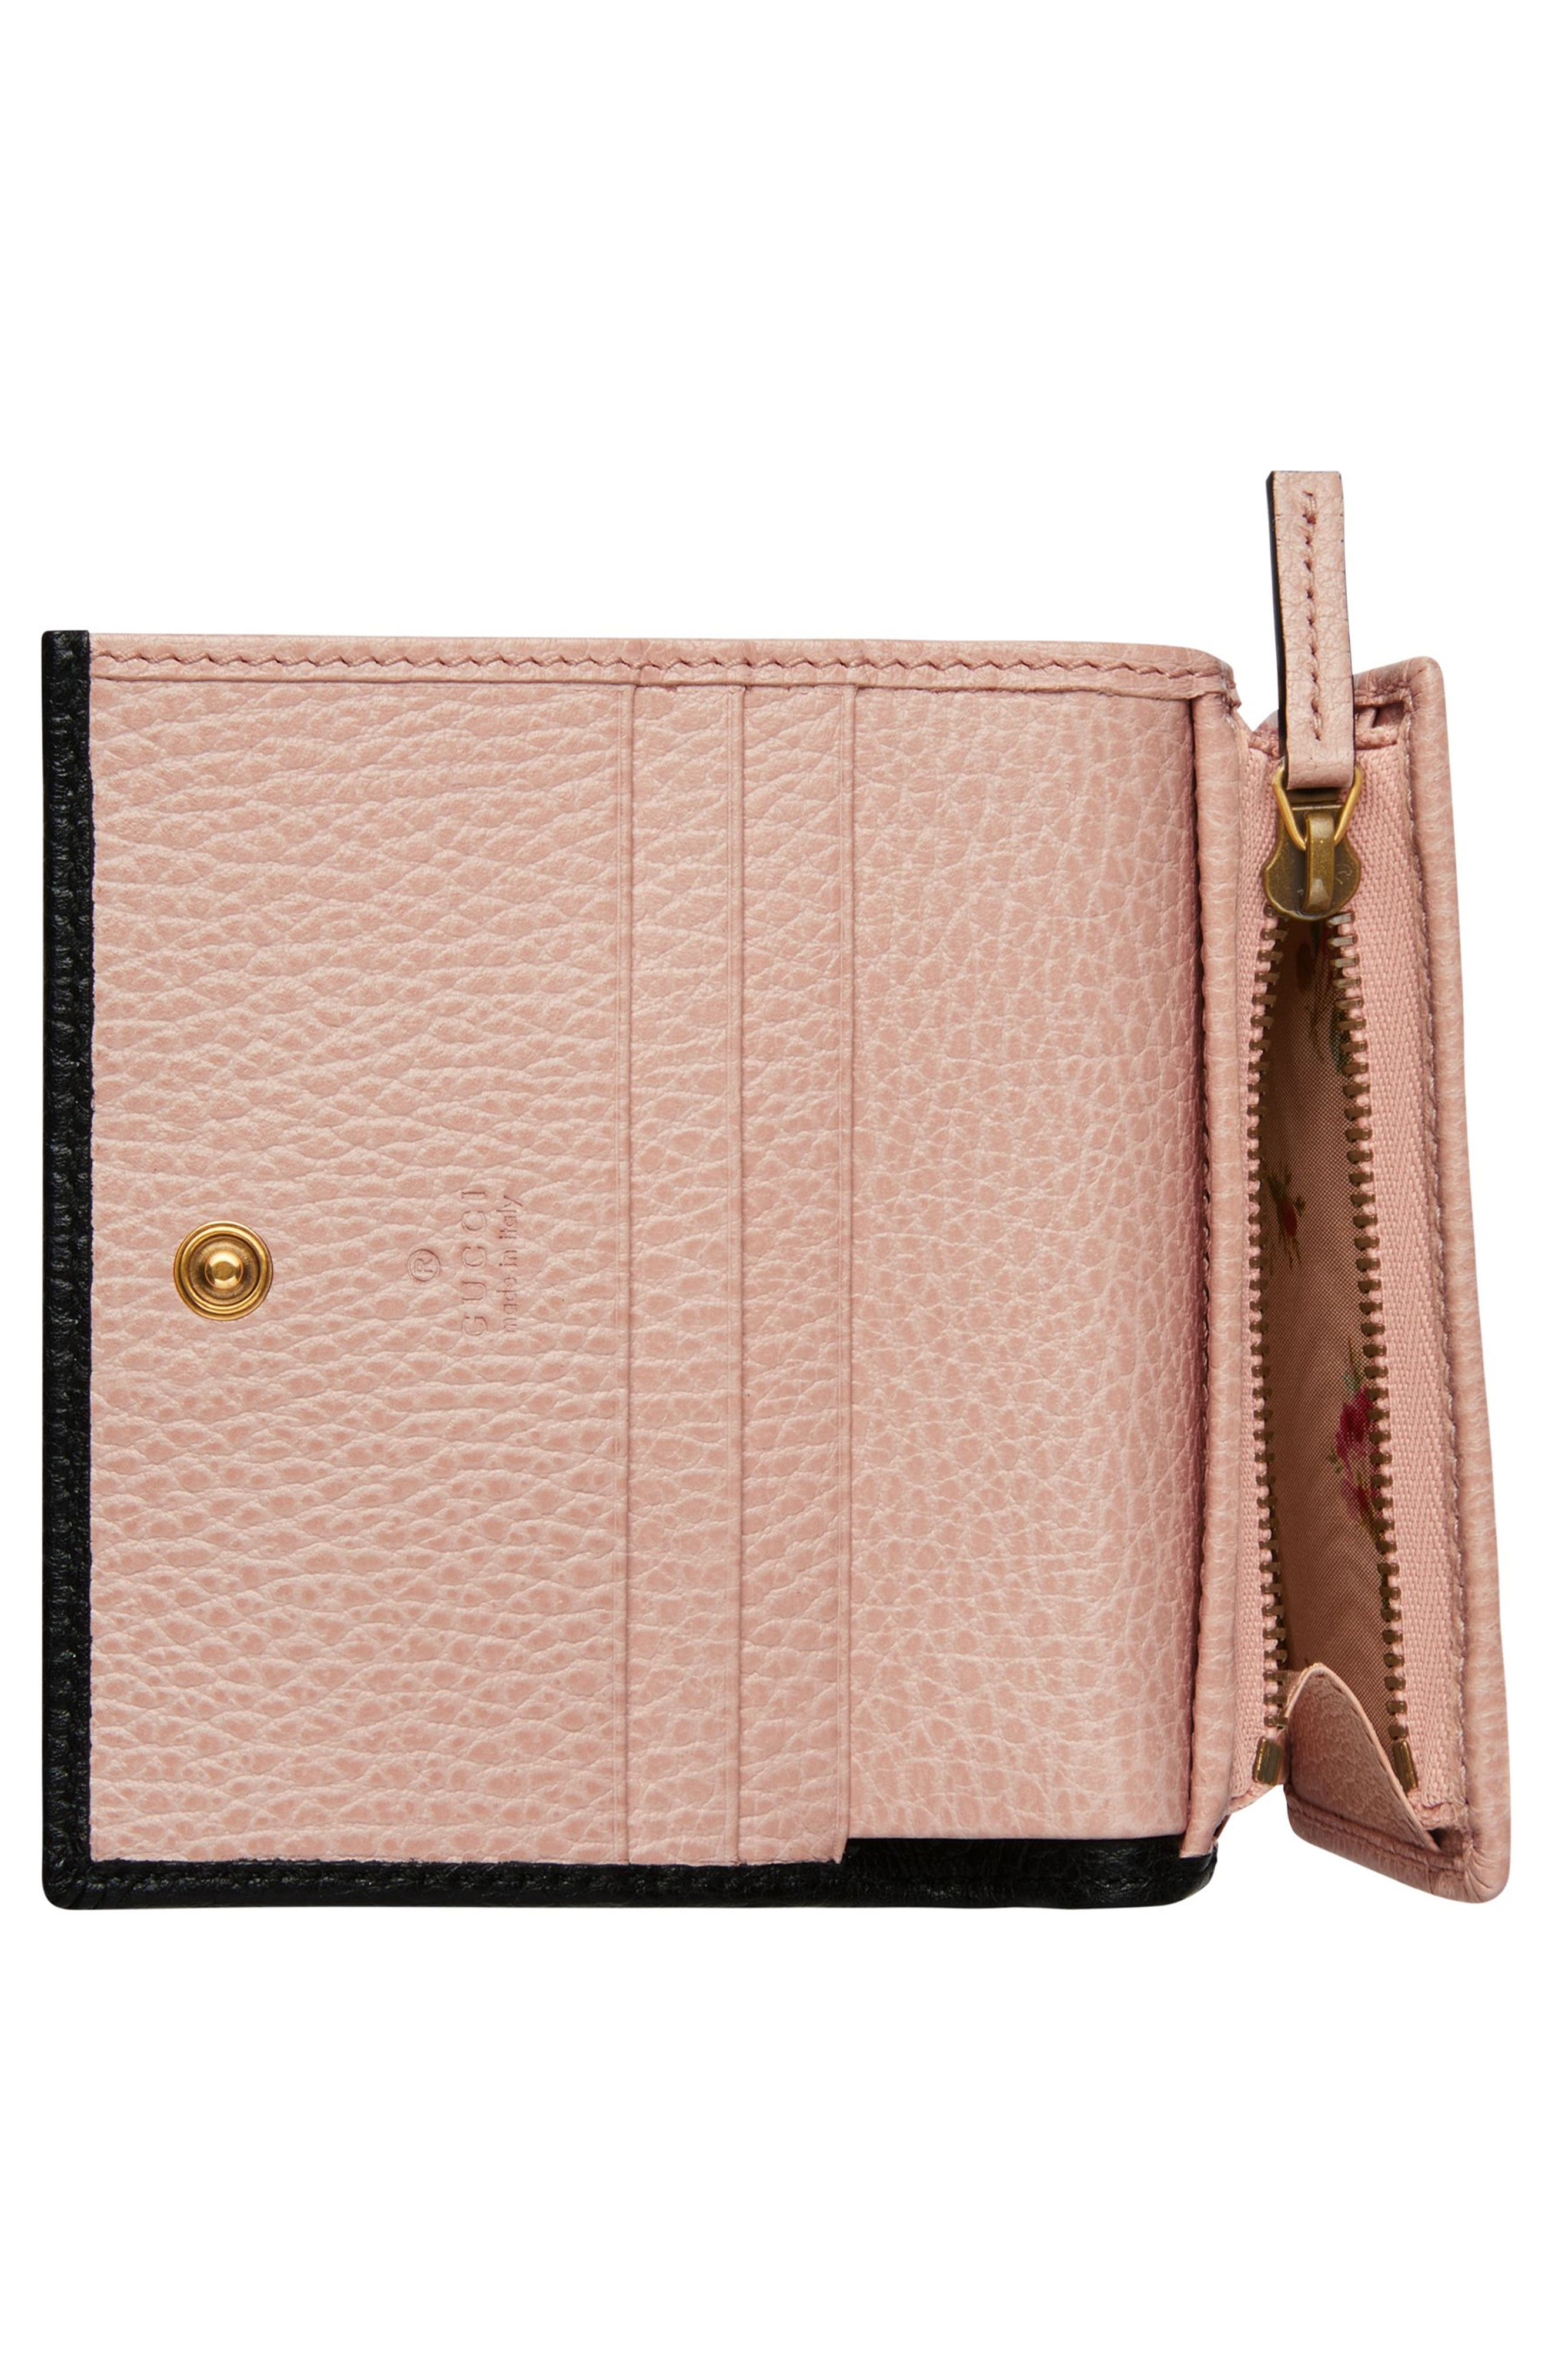 Fiocchino Leather Card Case,                             Alternate thumbnail 4, color,                             NERO/ PERFECT PINK/ CRYSTAL